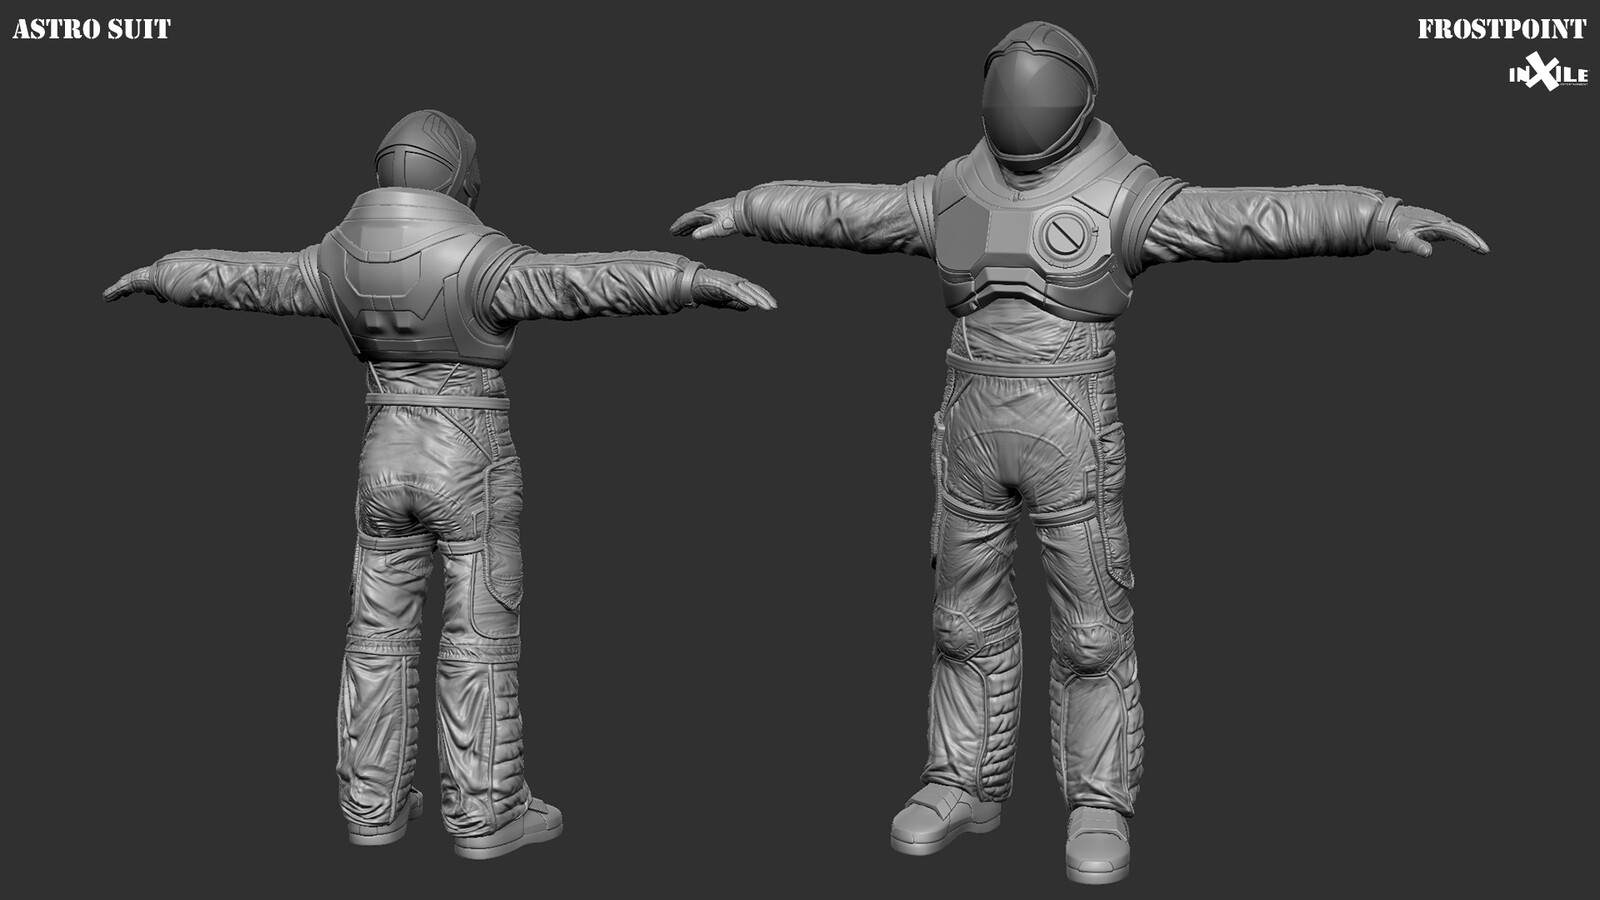 Integration and polish/edits of sculpt, model, and textures by me Original asset by Sergio Santos